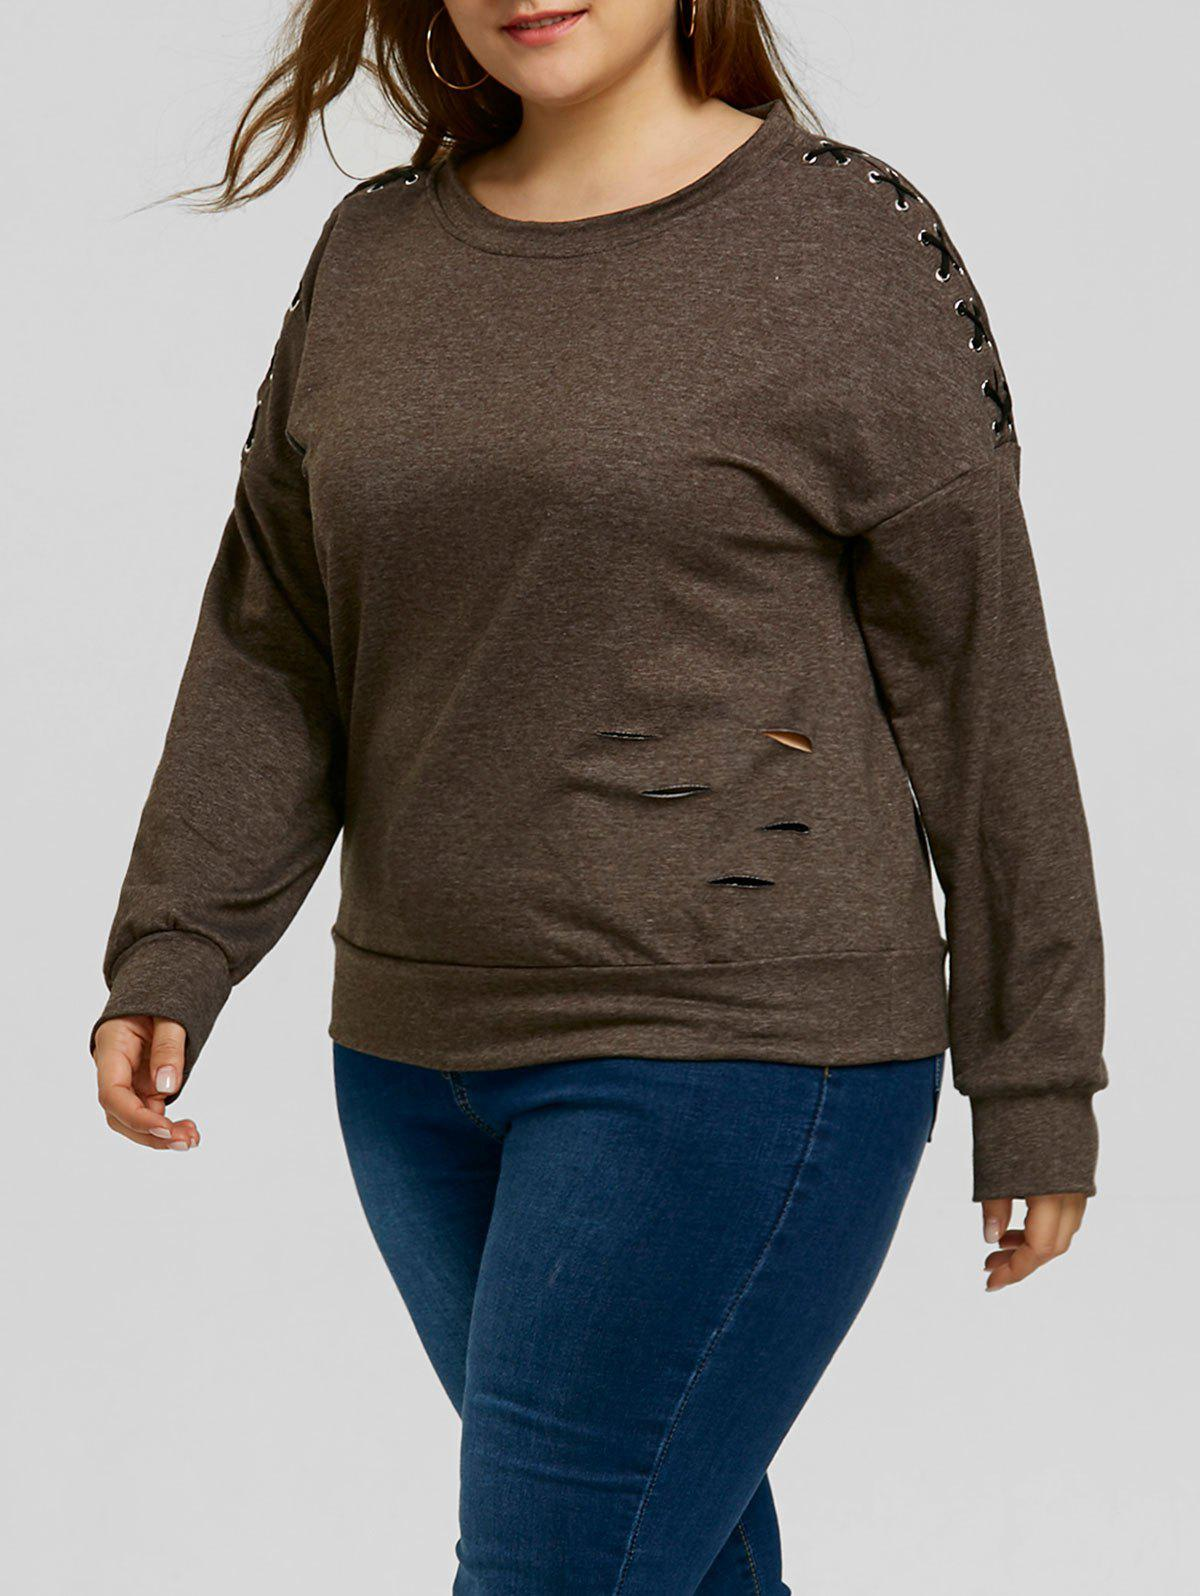 Plus Size Lace-up Sleeve Ripped Sweatshirt - DARK HEATHER GRAY 5XL